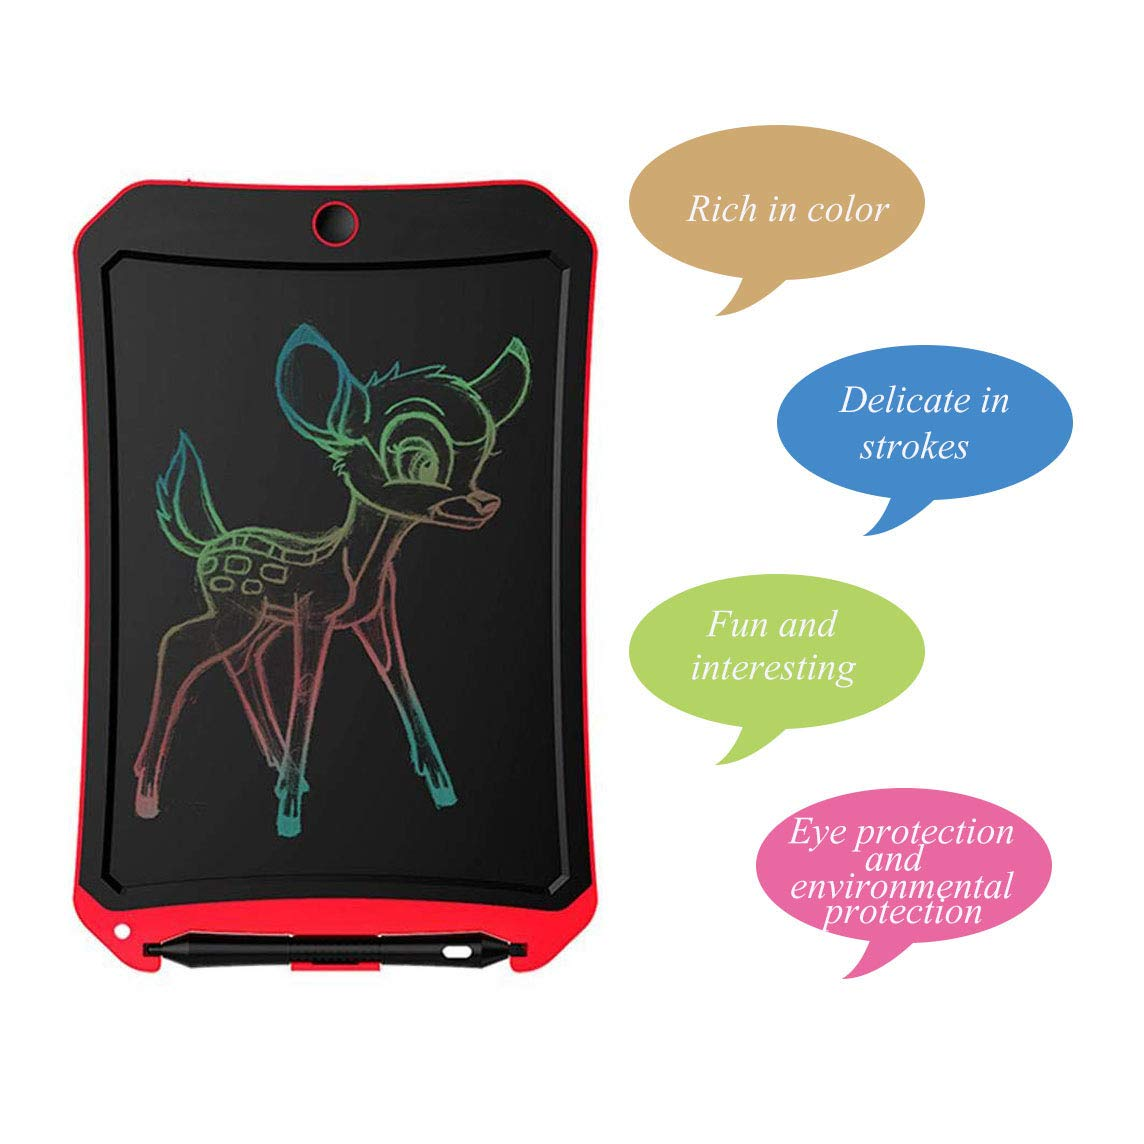 8.5 inch Writing /&Drawing Board Doodle Board Toys for Kids,BIBOYELF Birthday Gift for 4-5 Years Old Kids /& Adults Color LCD Writing Tablet with Stylus Smart Paper for Drawing Writer/ Pink-White